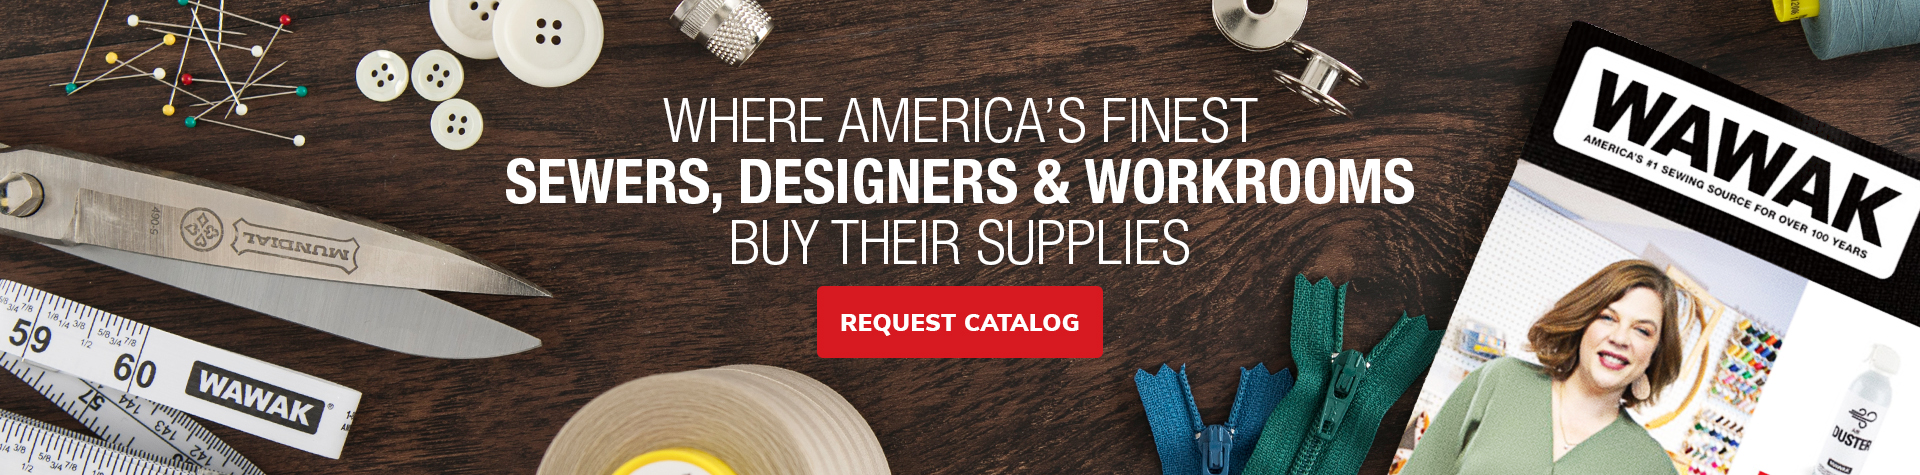 Where America's Finest Sewers Buy their Supplies. Request A Catalog.